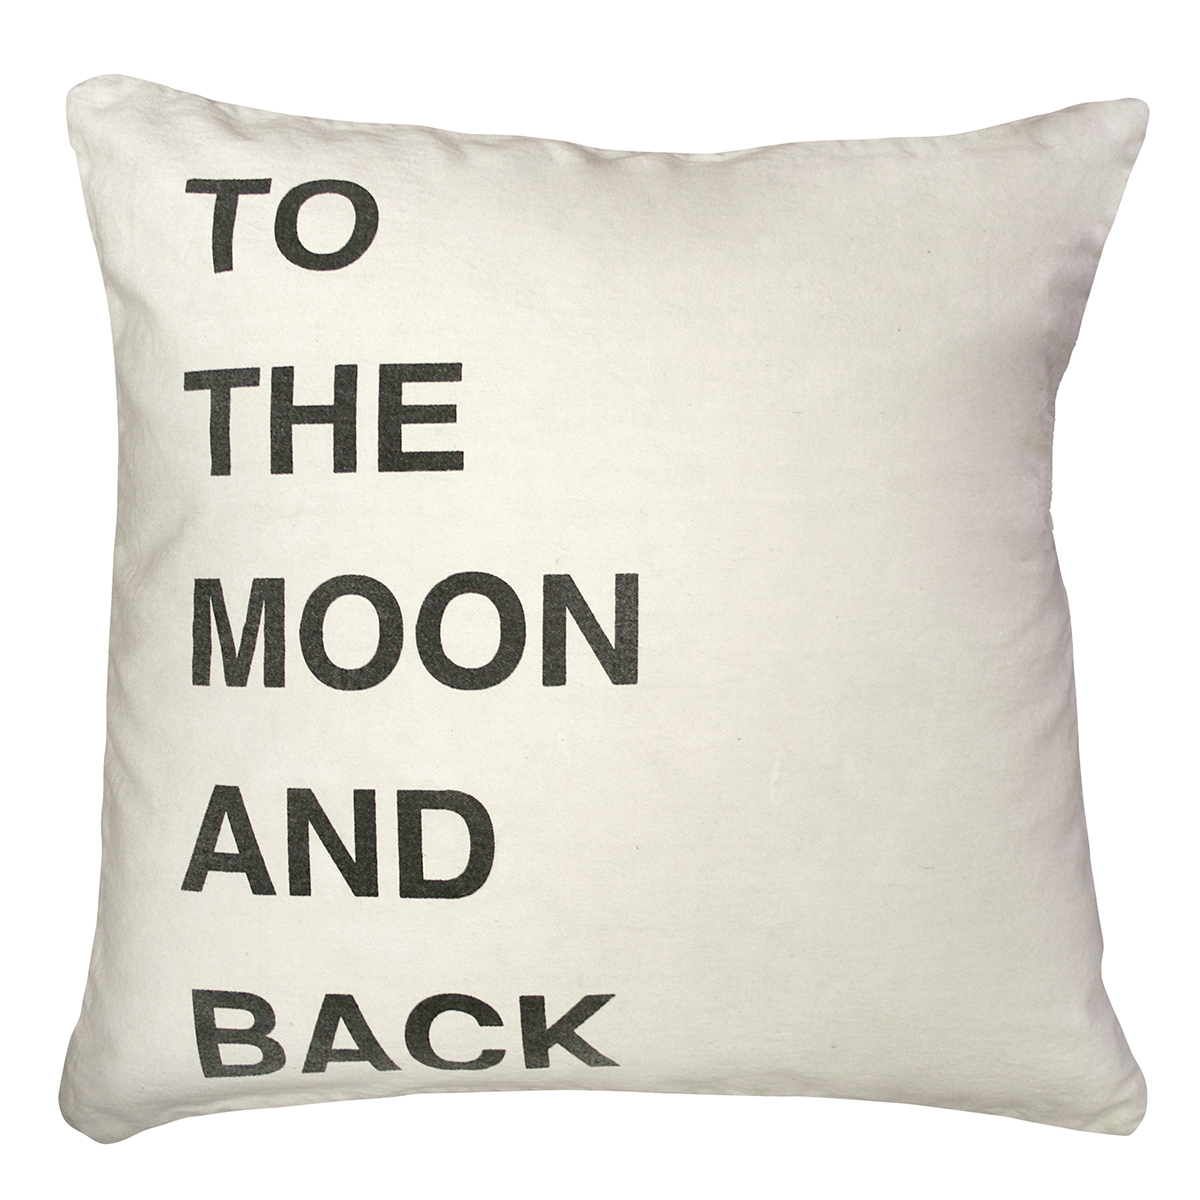 To The Moon and Back Bold Script Linen Throw Pillow - 24x24